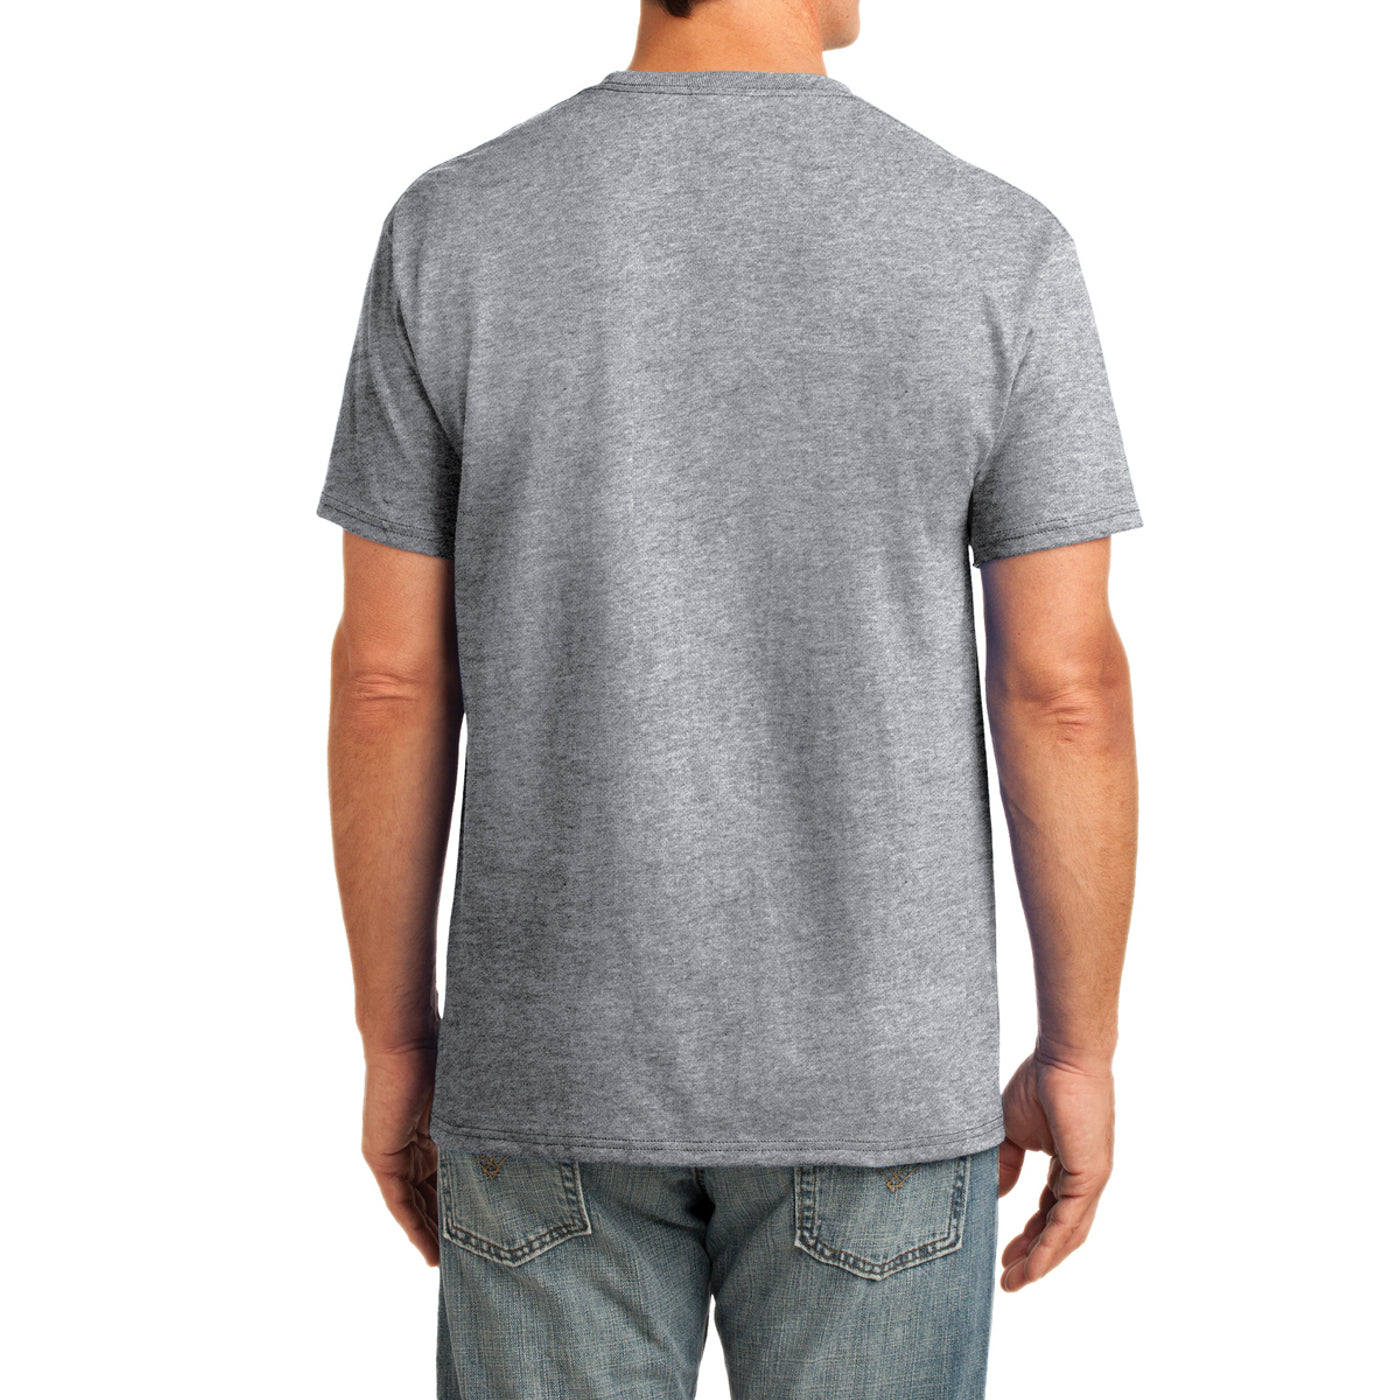 Men's Core Cotton Pocket Tee - Athletic Heather - Back